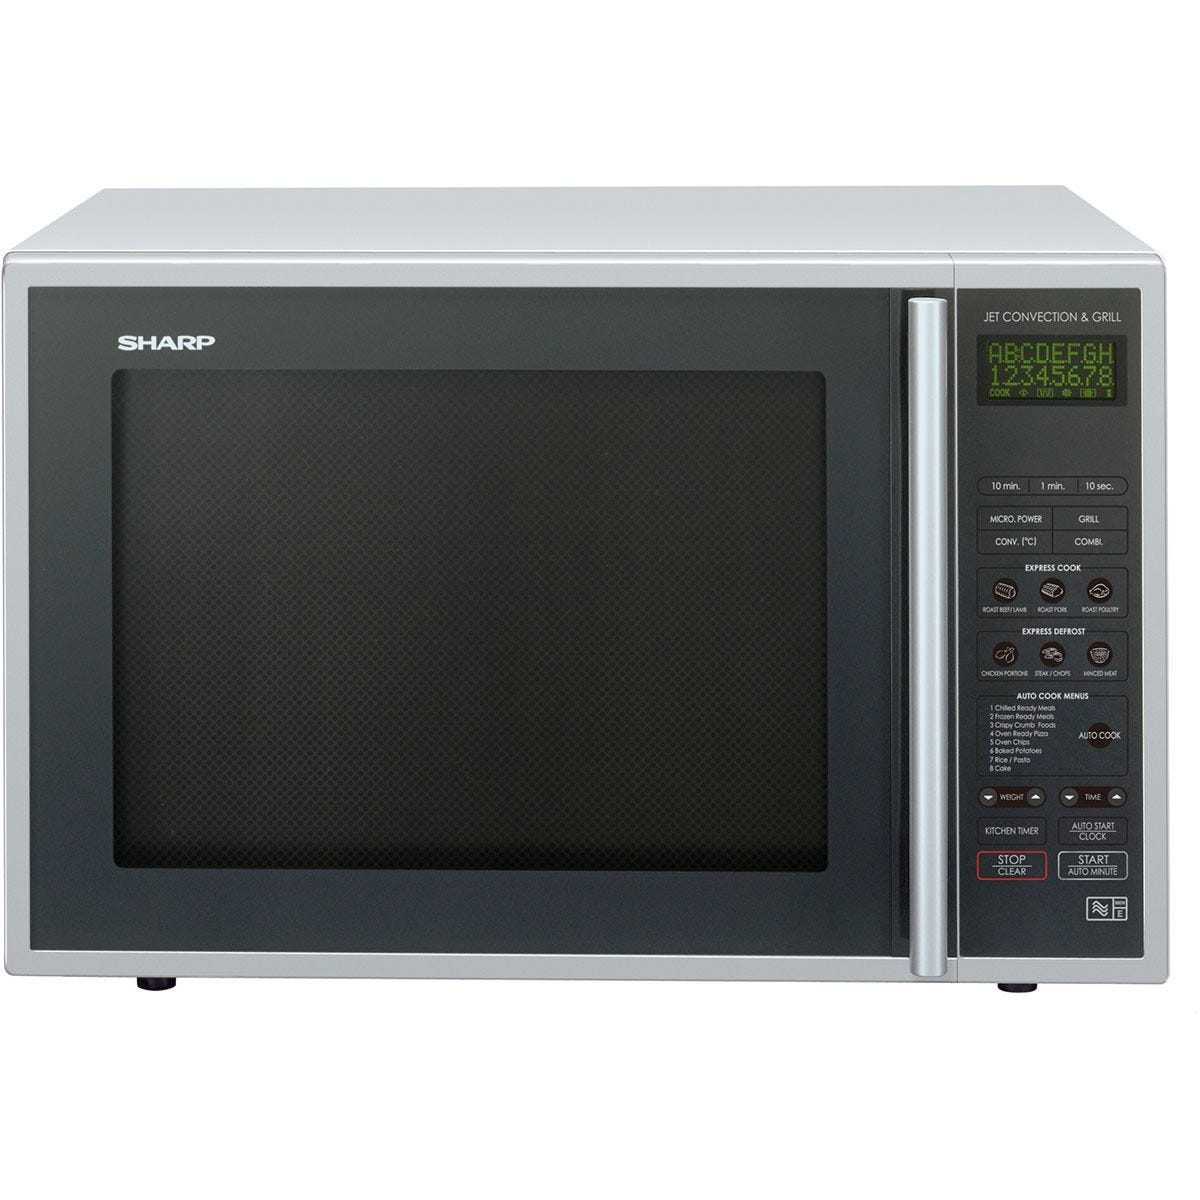 Sharp R959SLMAA 40L 900W Convection Microwave with 1400W Quartz Grill - Silver